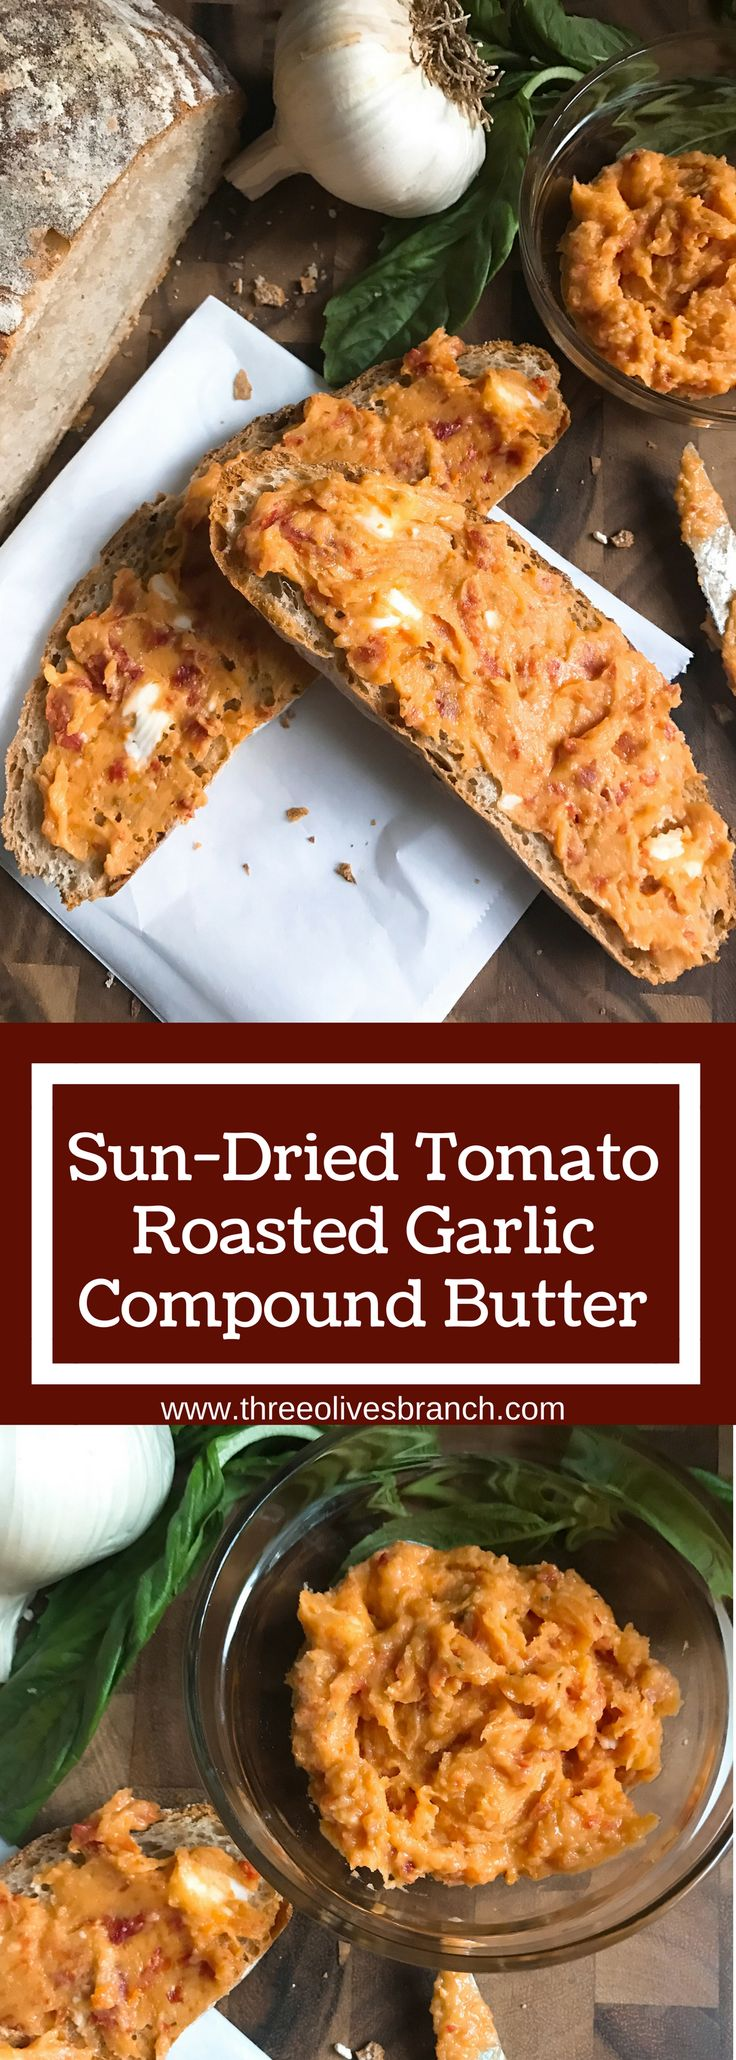 ... Sun-Dried Tomato Roasted Garlic Compound Butter | Three Olives Branch